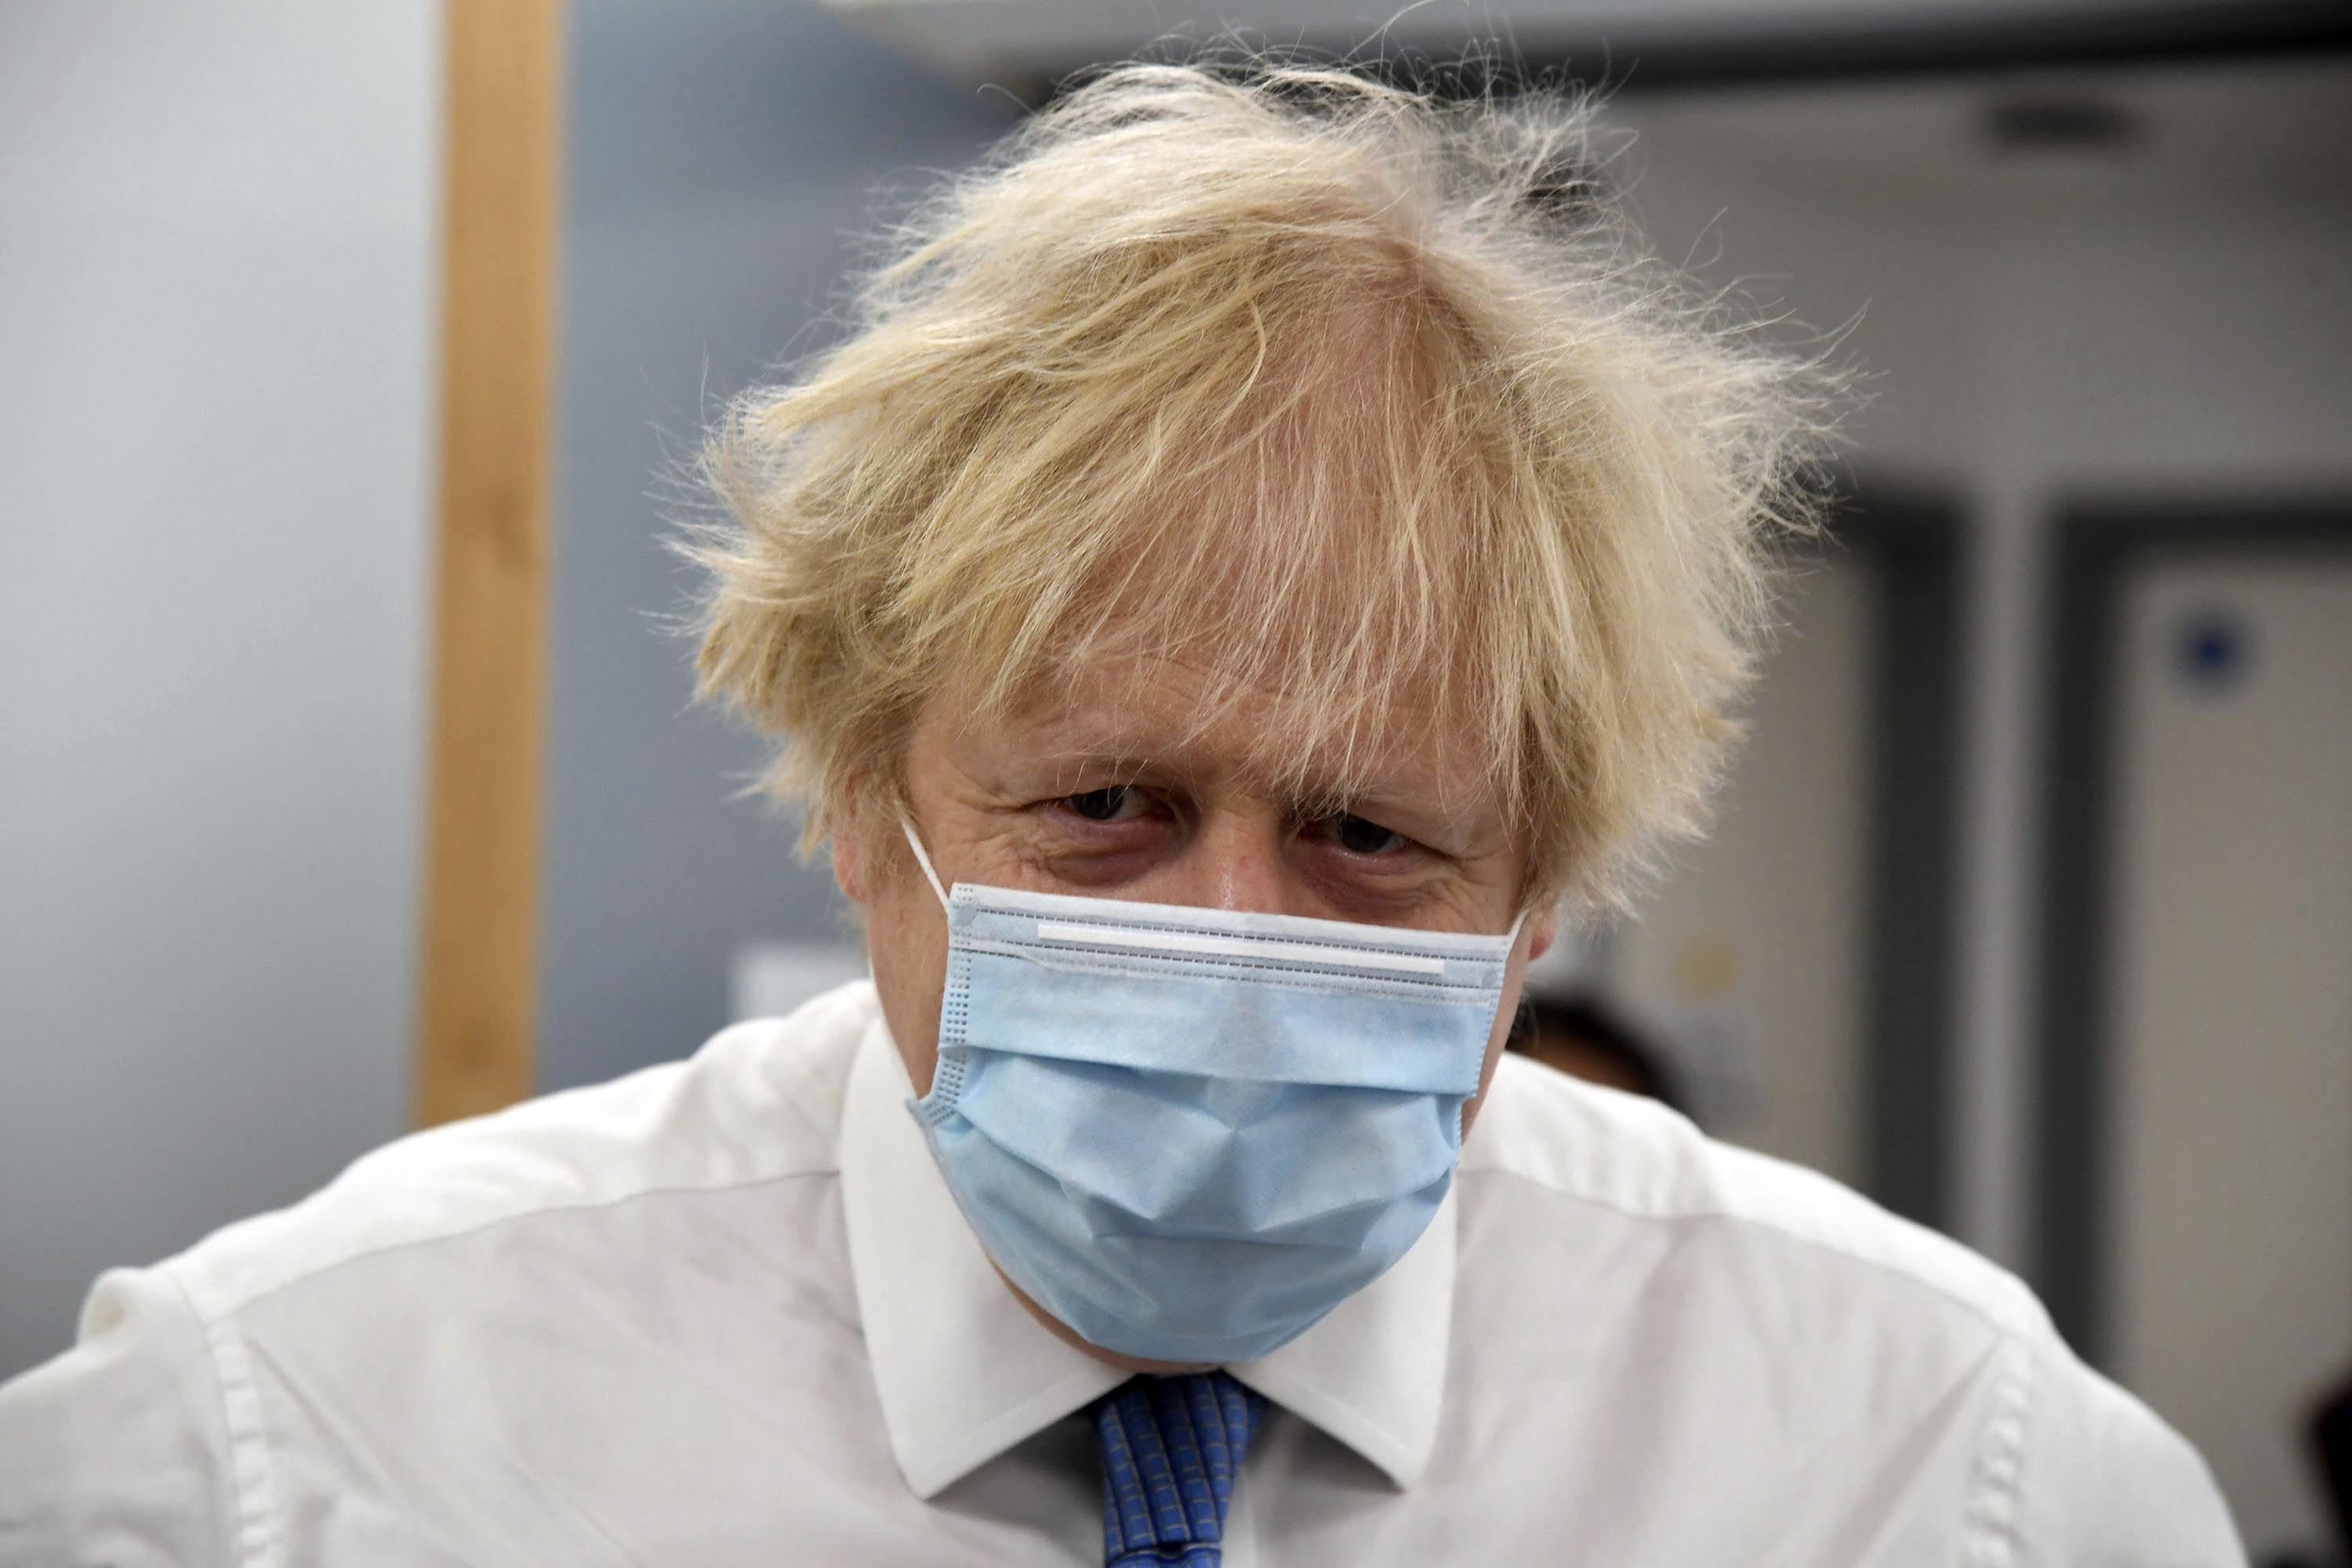 Britain's Prime Minister Boris Johnson is pictured during a visit to a coronavirus vaccination center in Orpington, south-east London, on Monday, February 15.